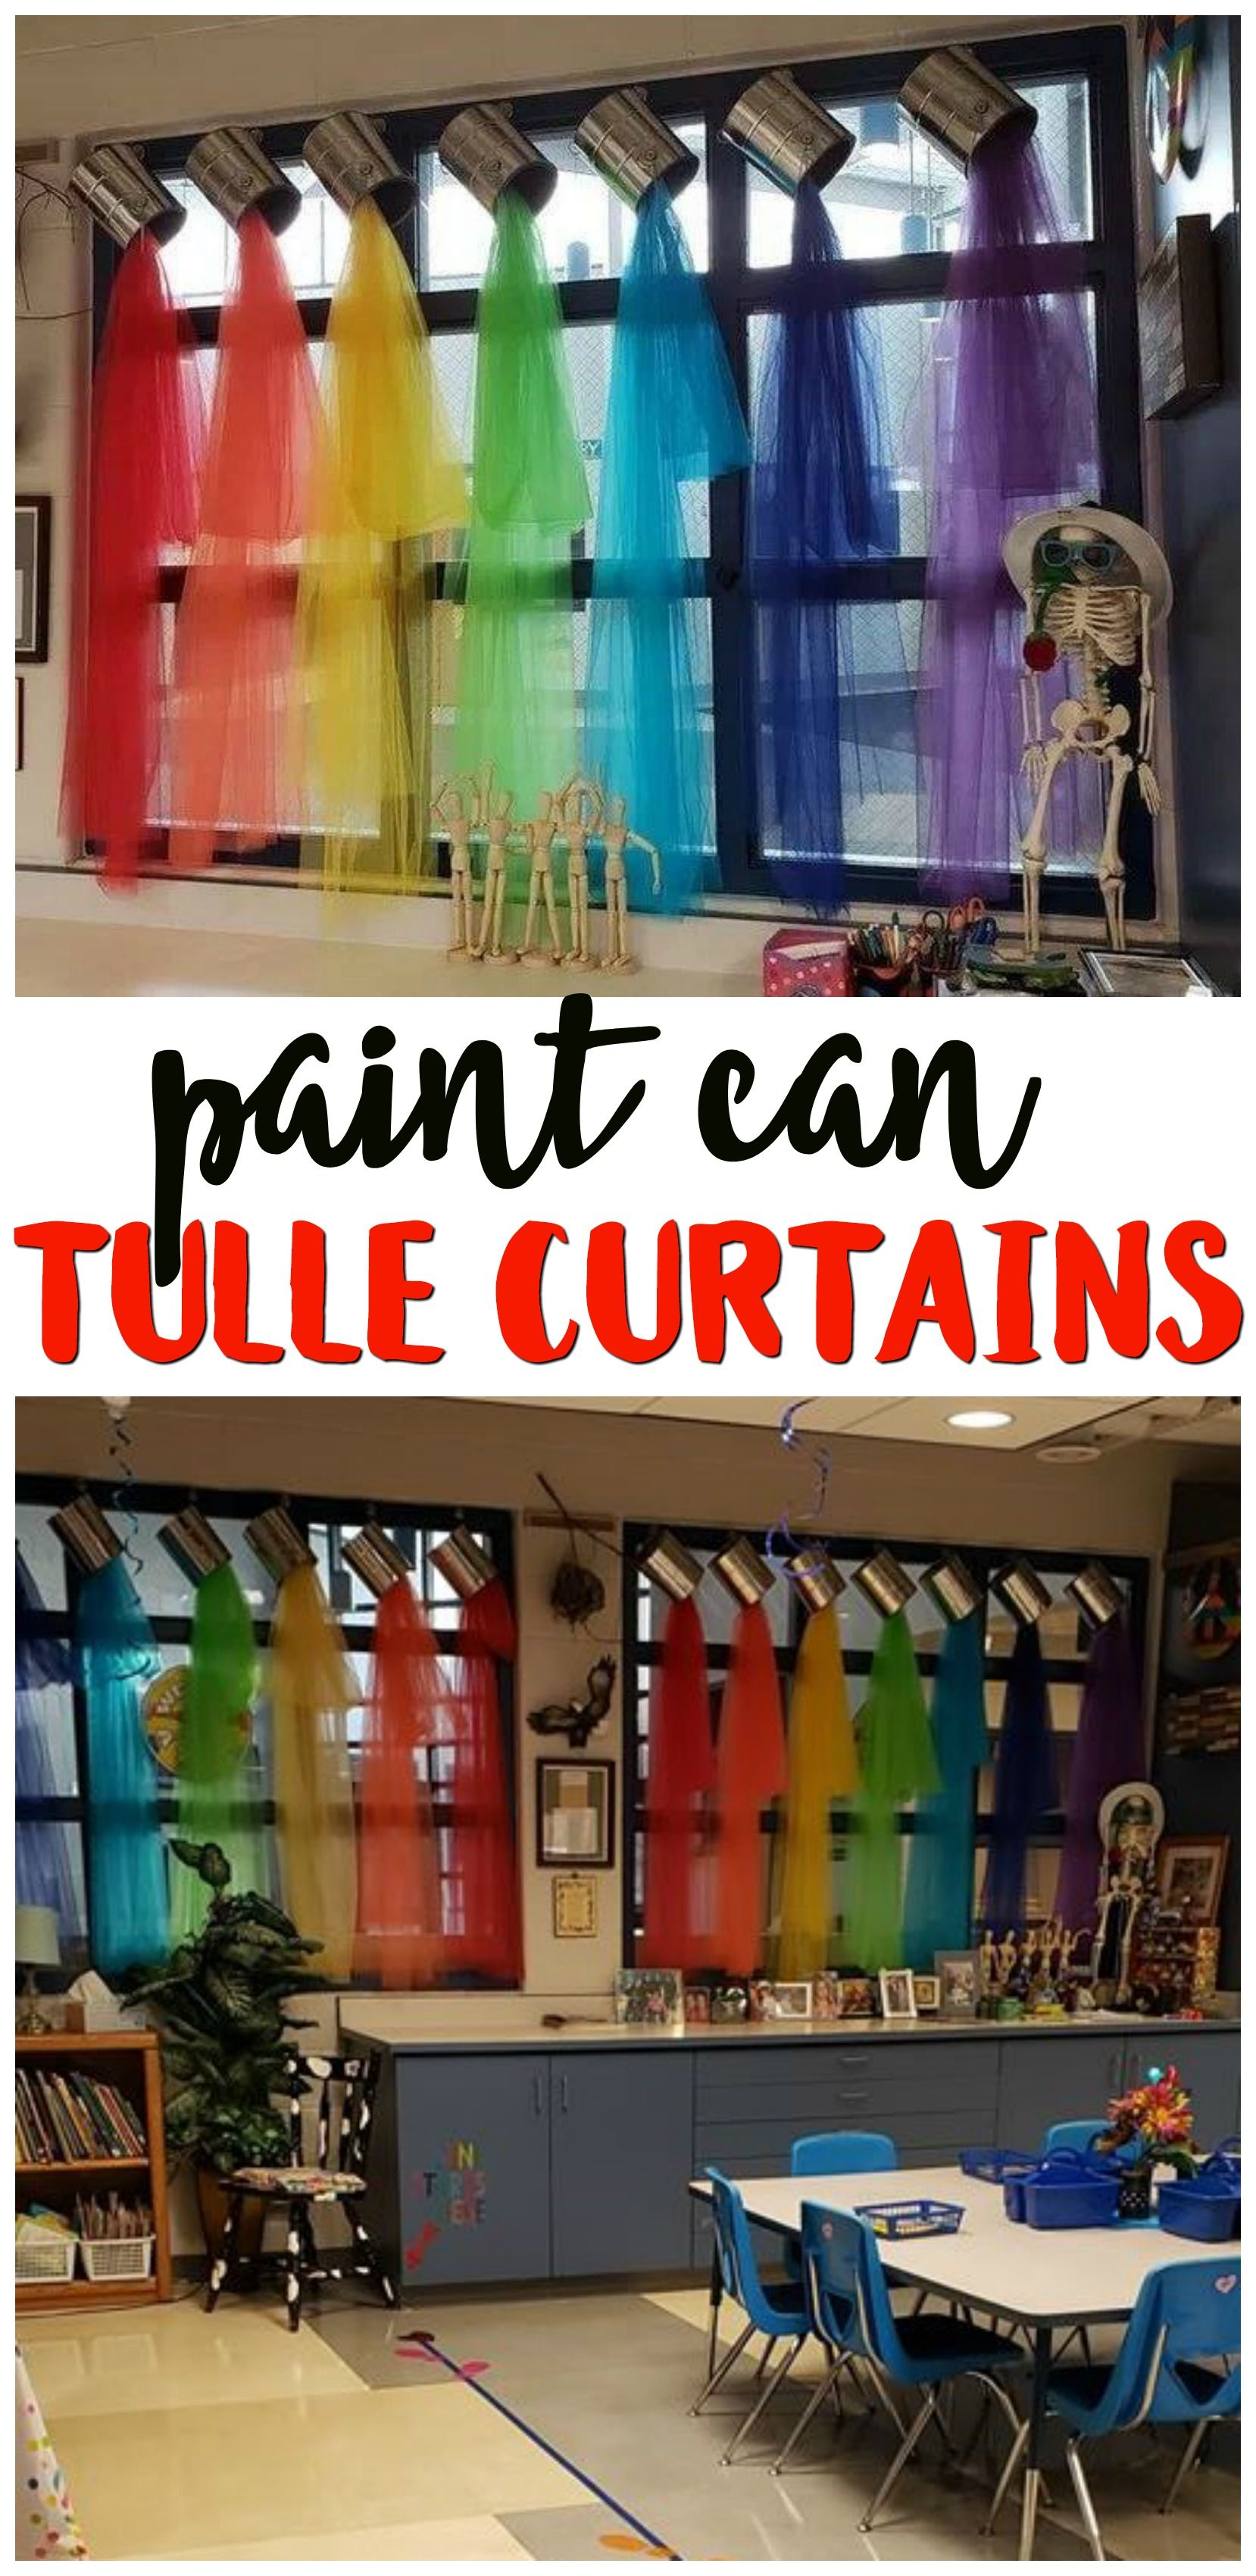 Pouring Paint Can Tulle Curtains